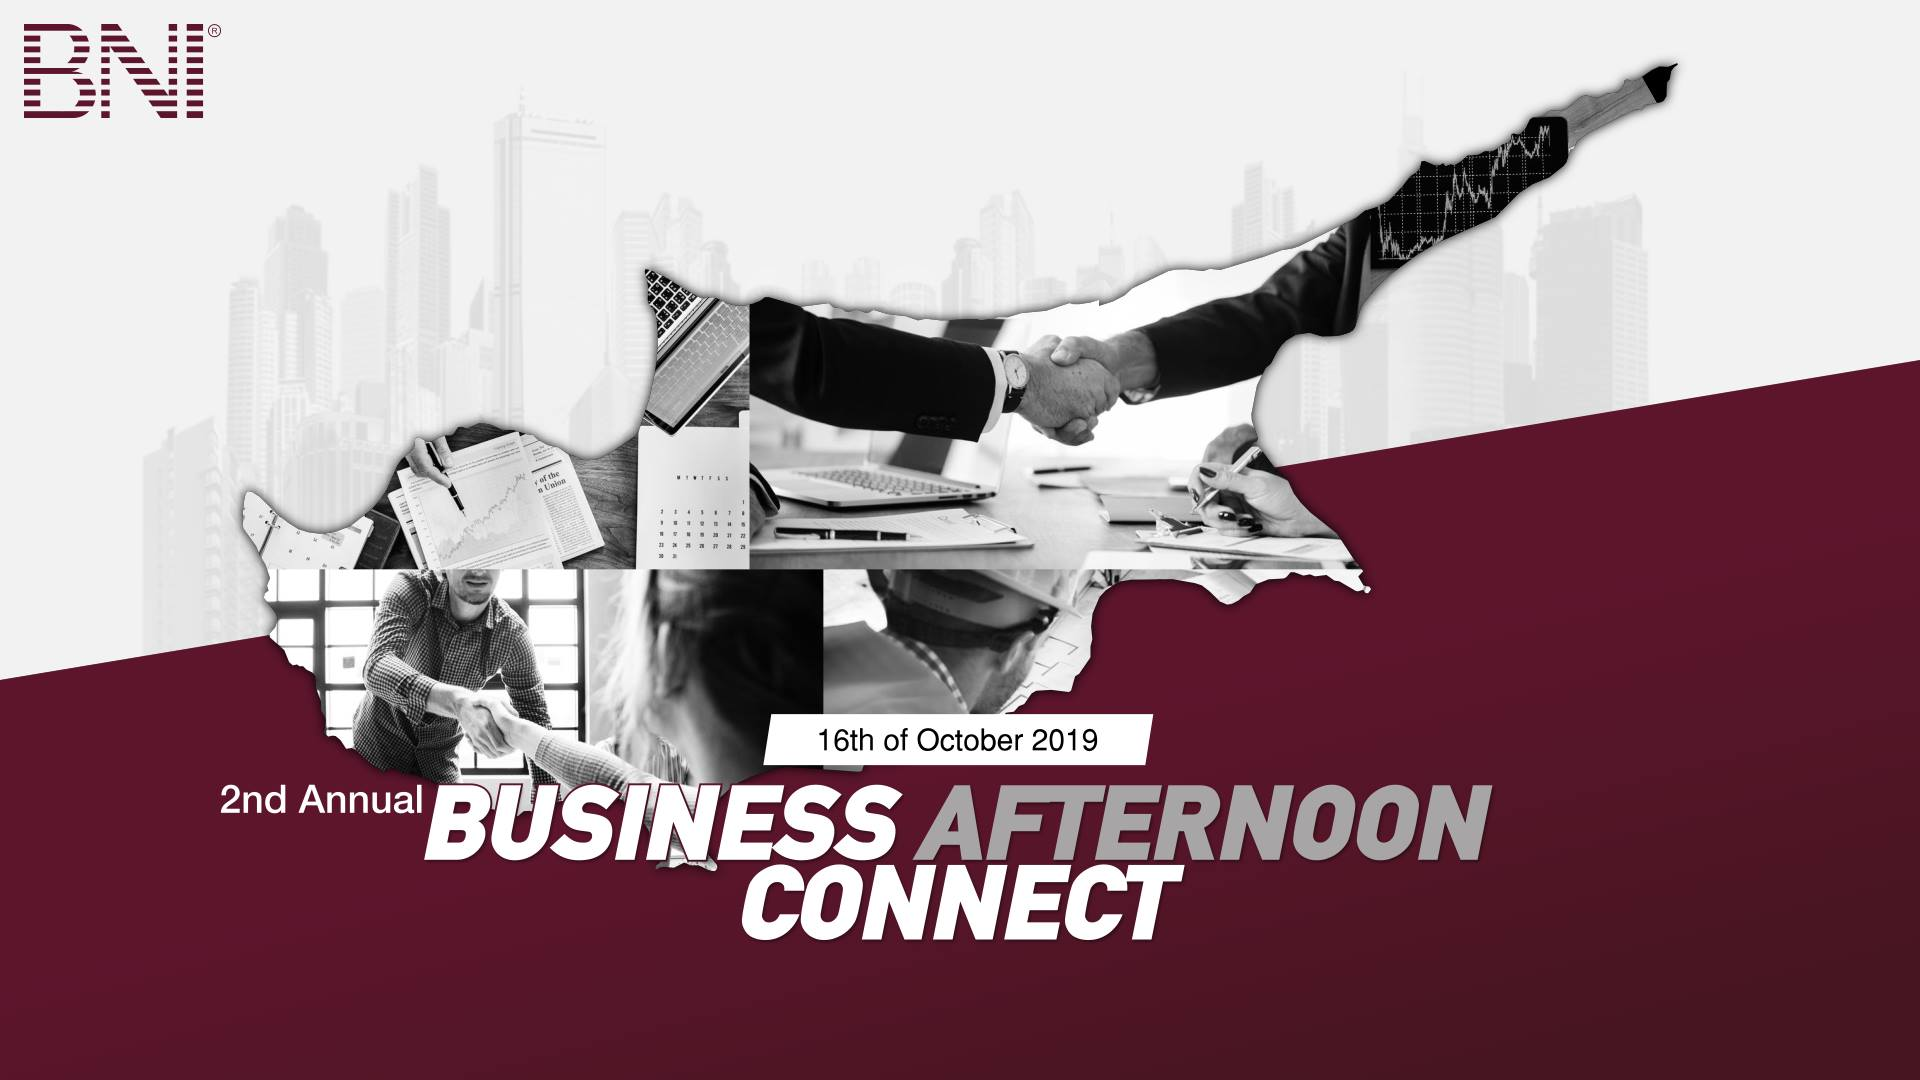 Business Afternoon Connect Networking Event cyprus cyprusinno event events